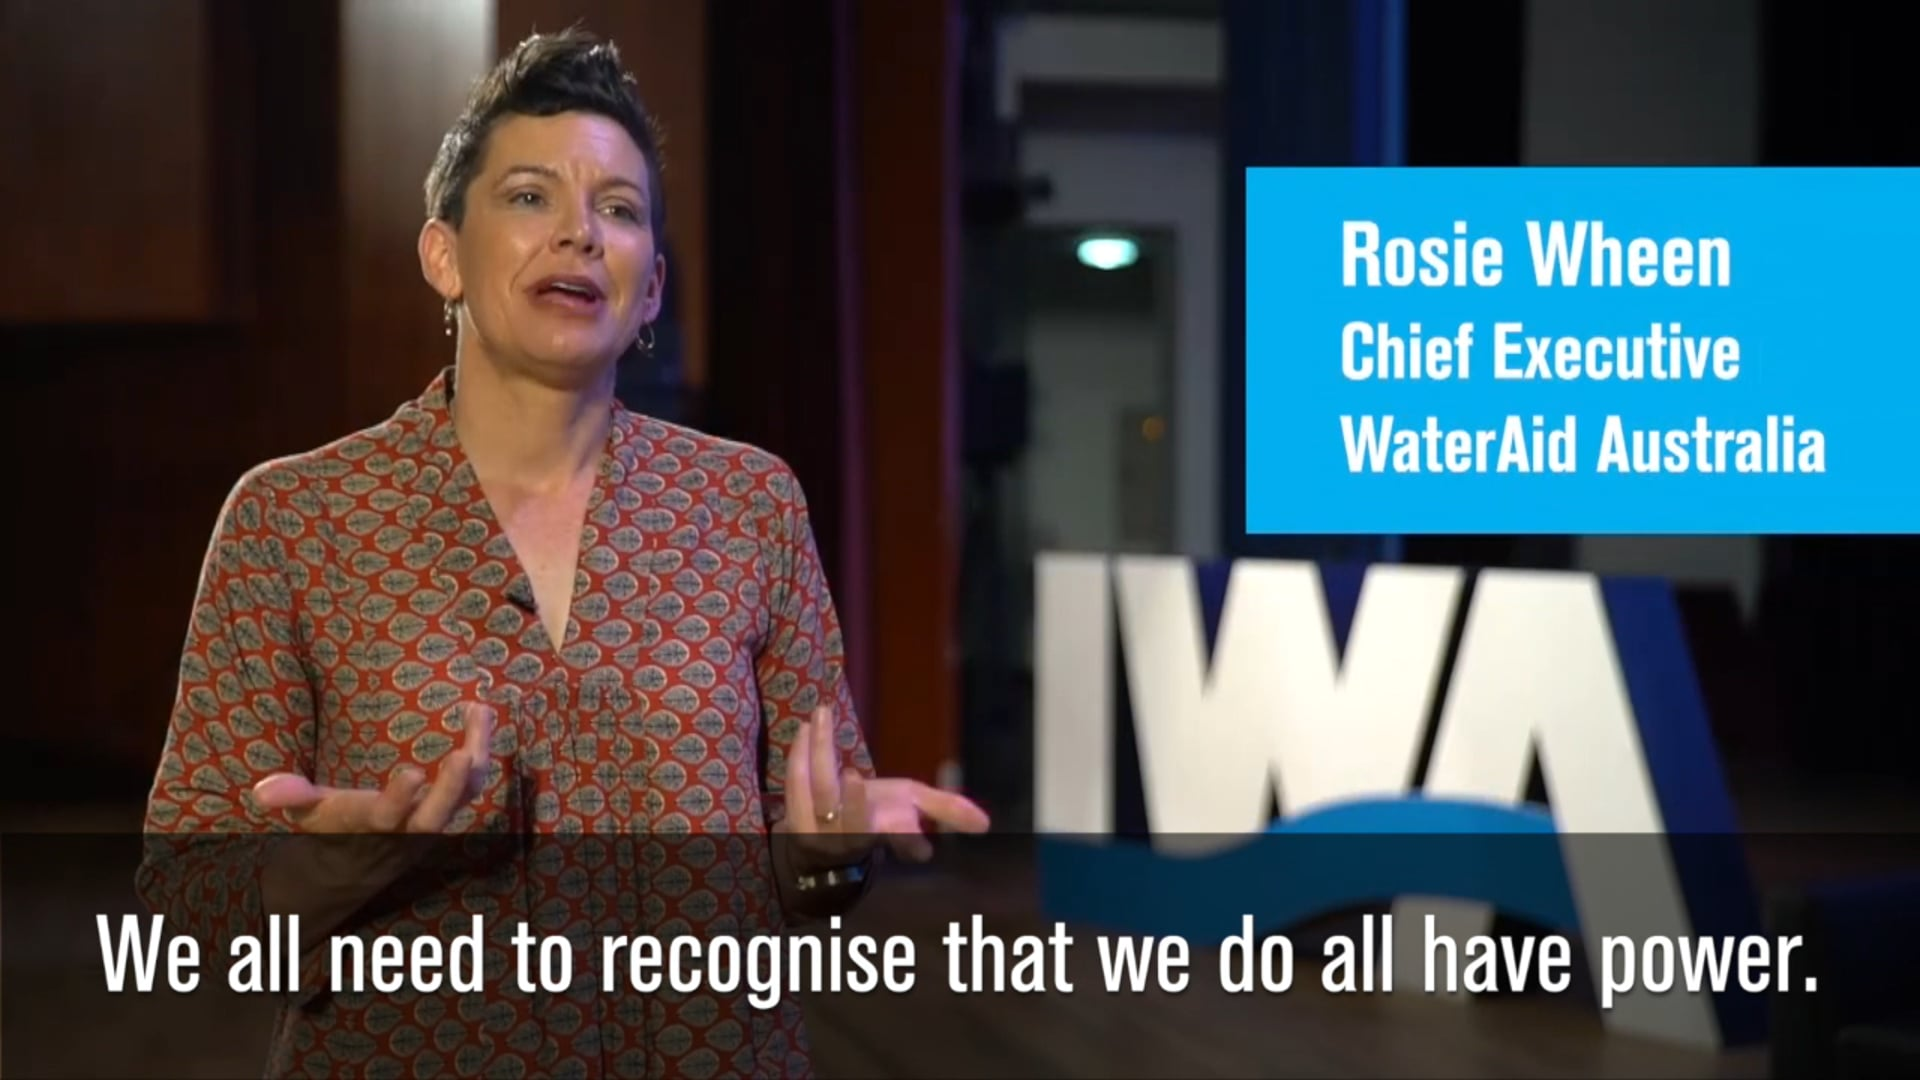 Rosie Wheen: The Importance of Storytelling